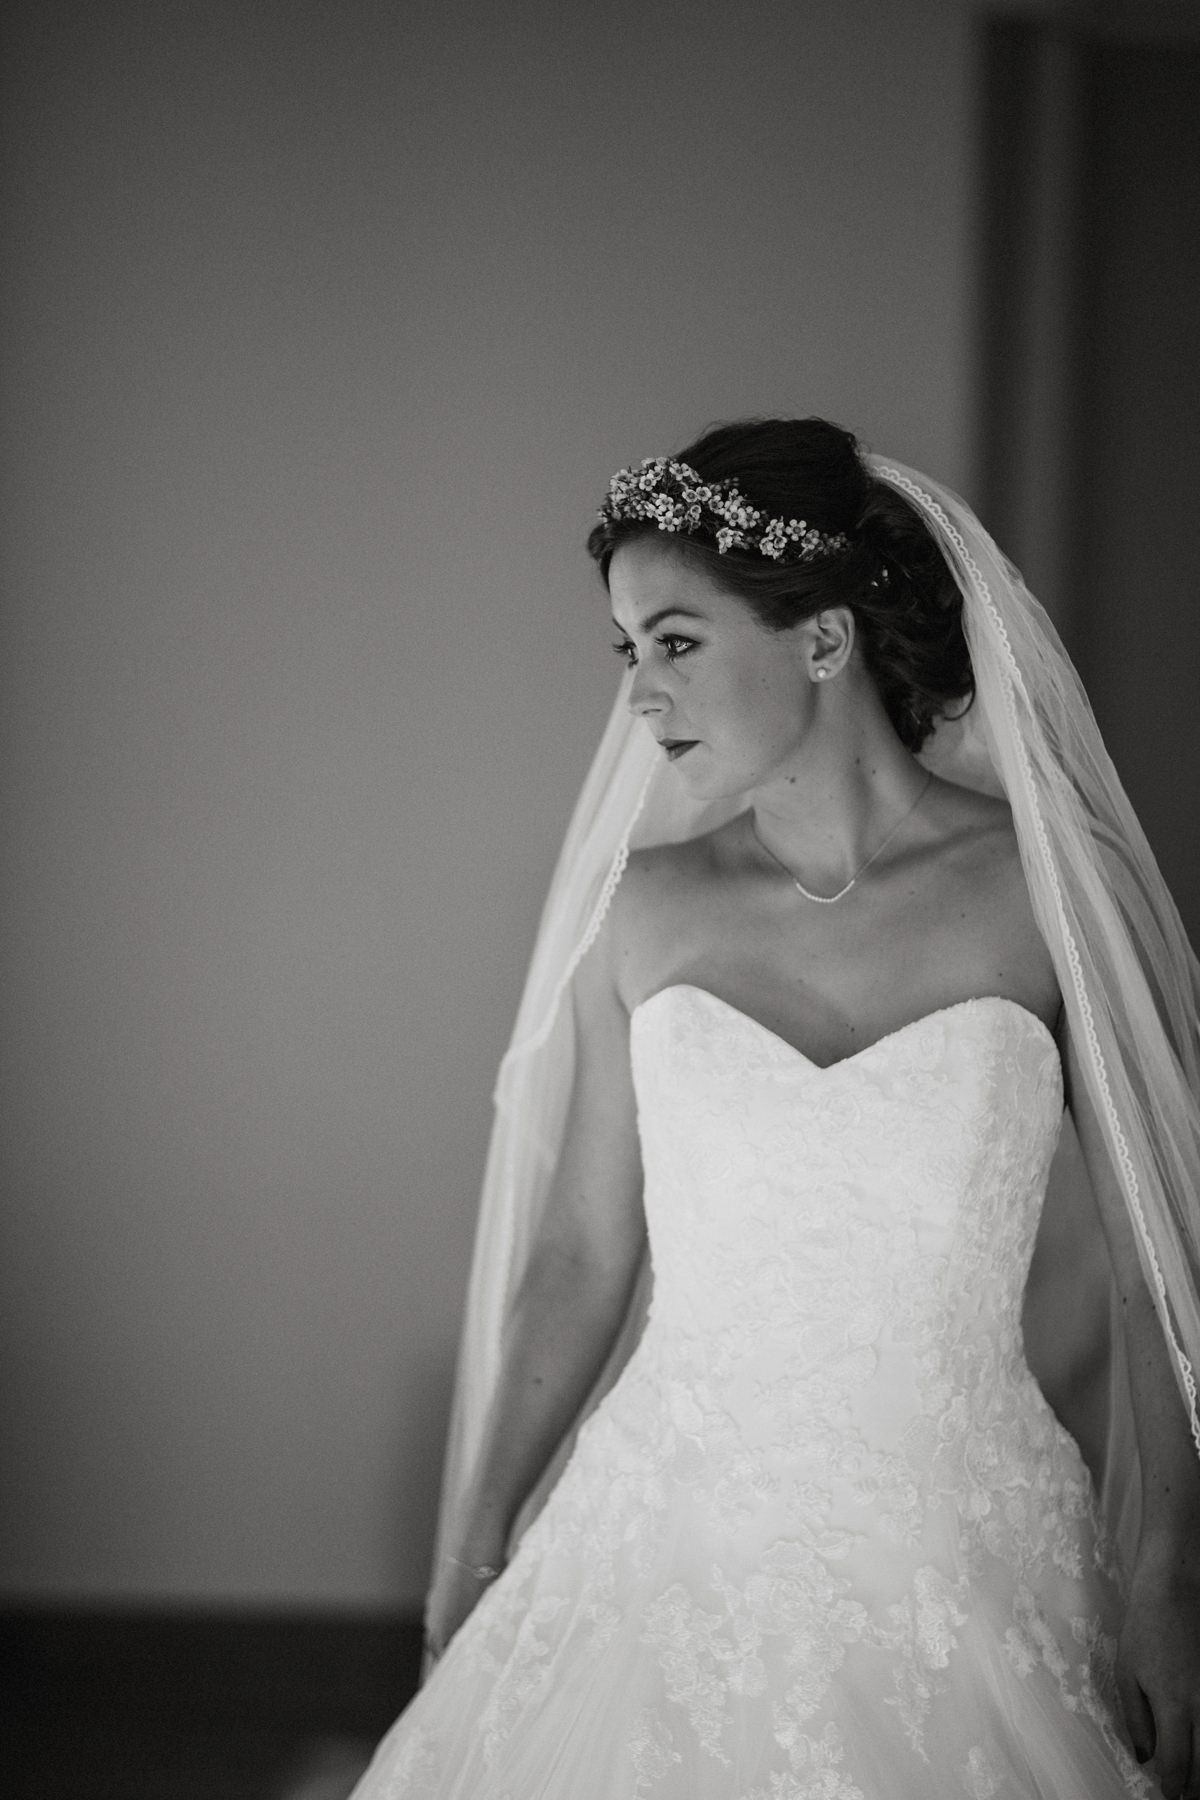 black and white of bride ready to get married